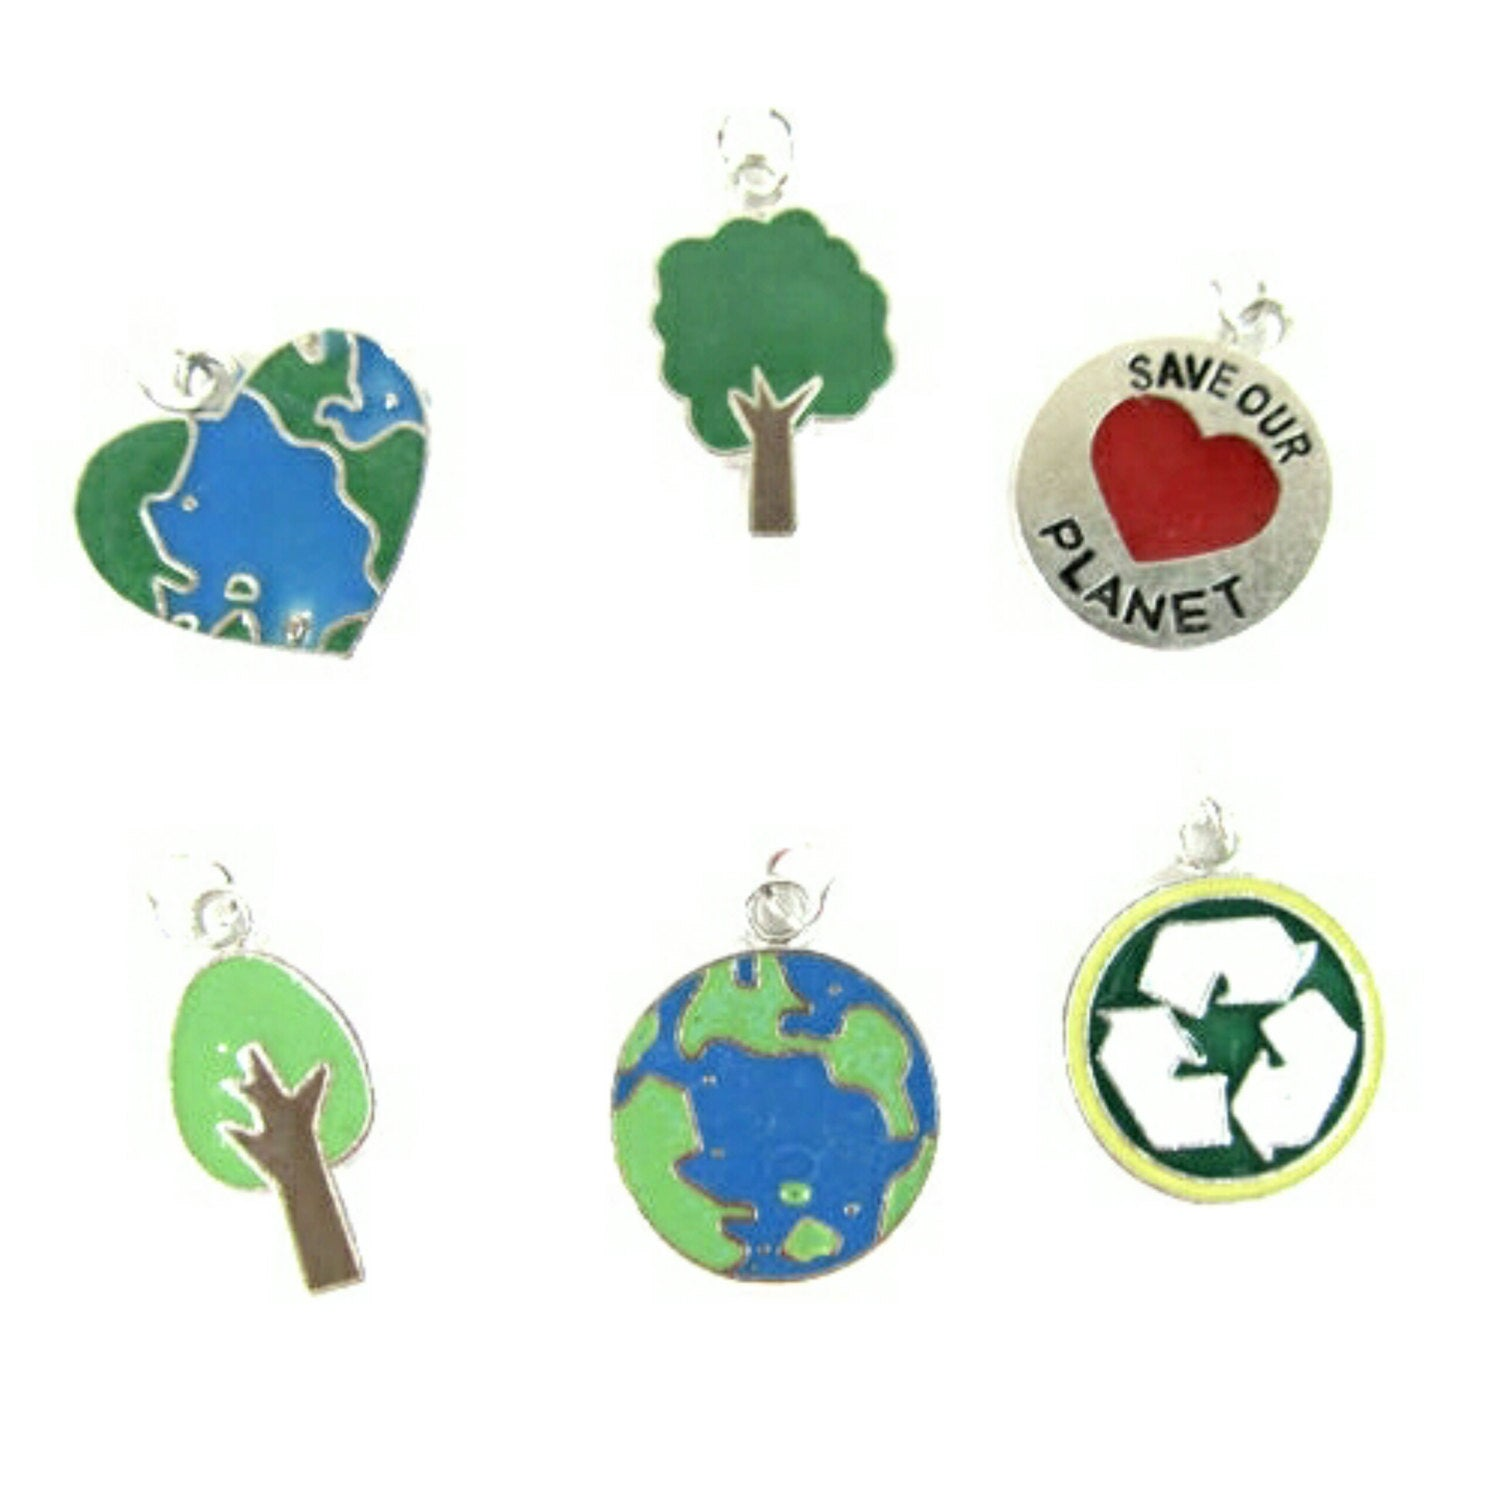 Save Our Planet Charms